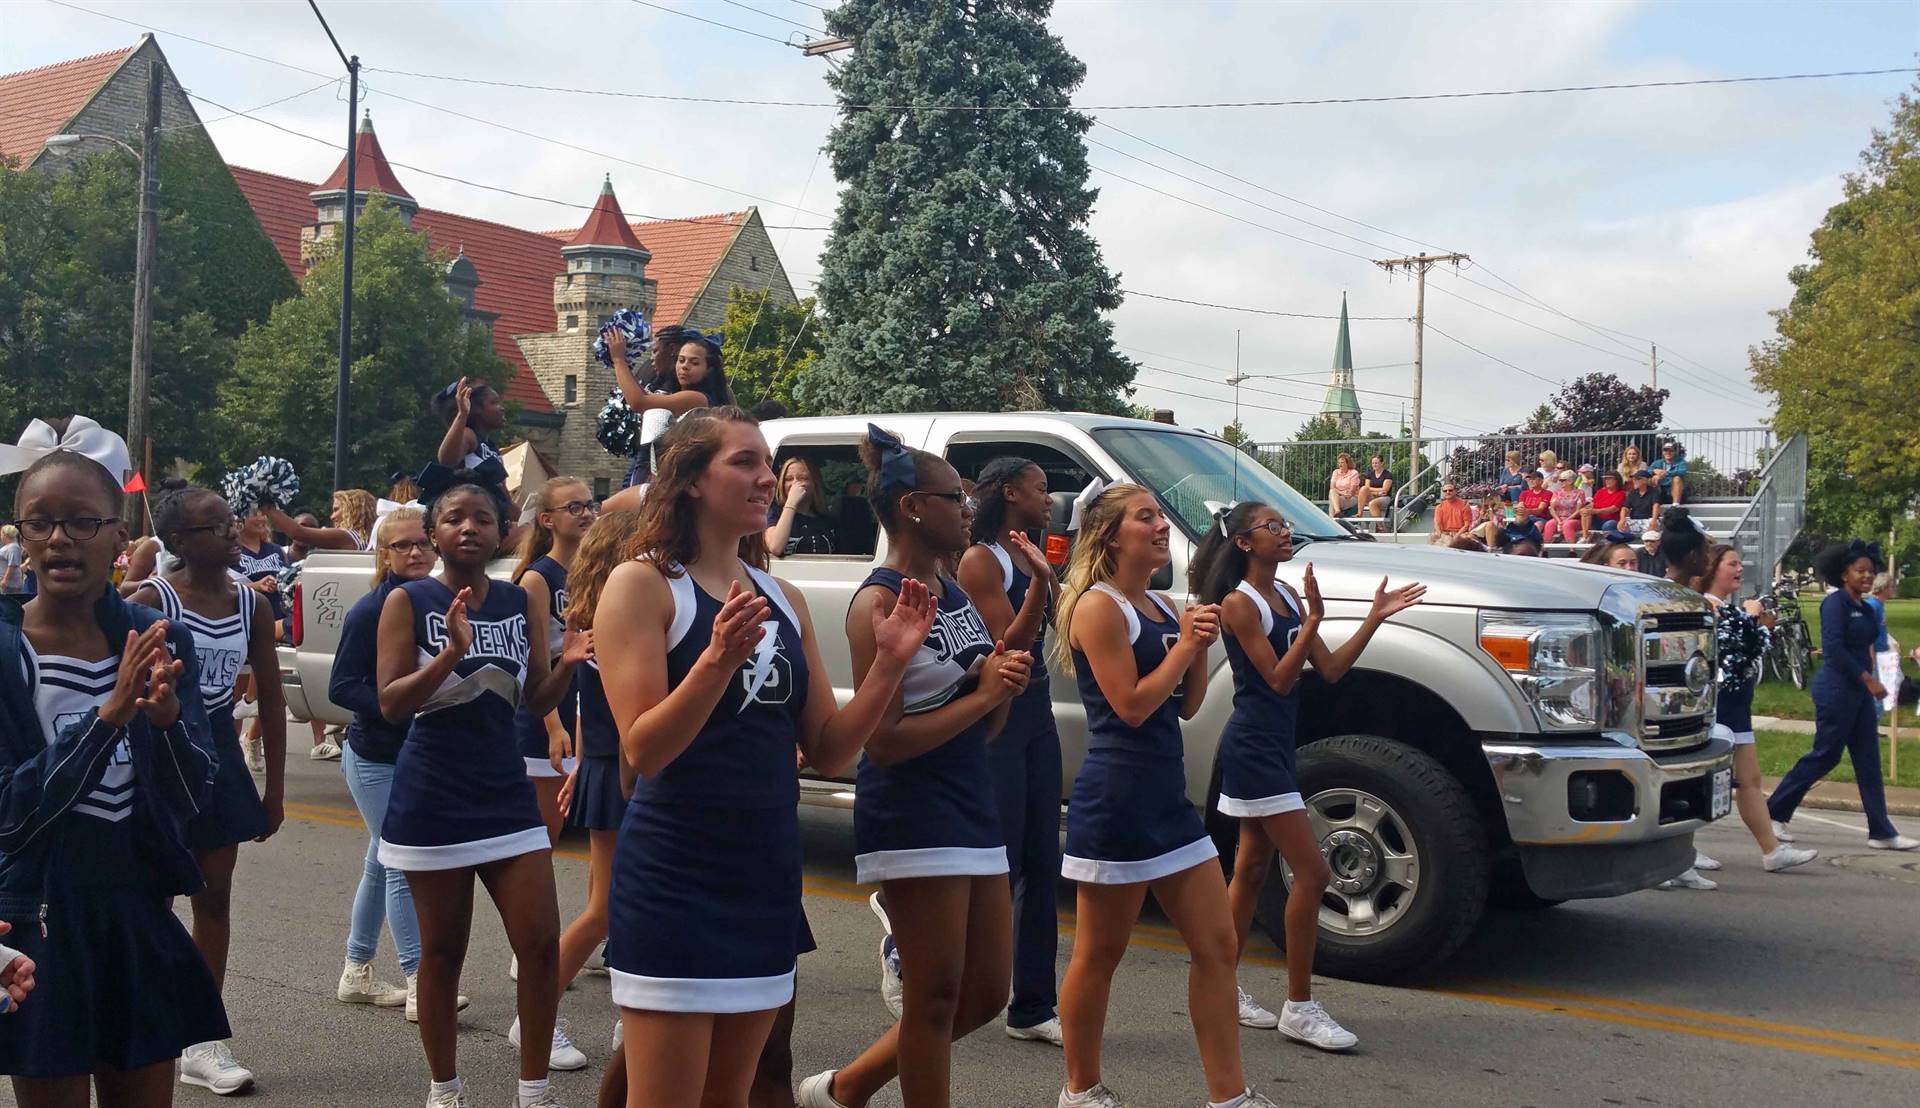 SHS Cheerleaders - Bicentennial Parade 2018